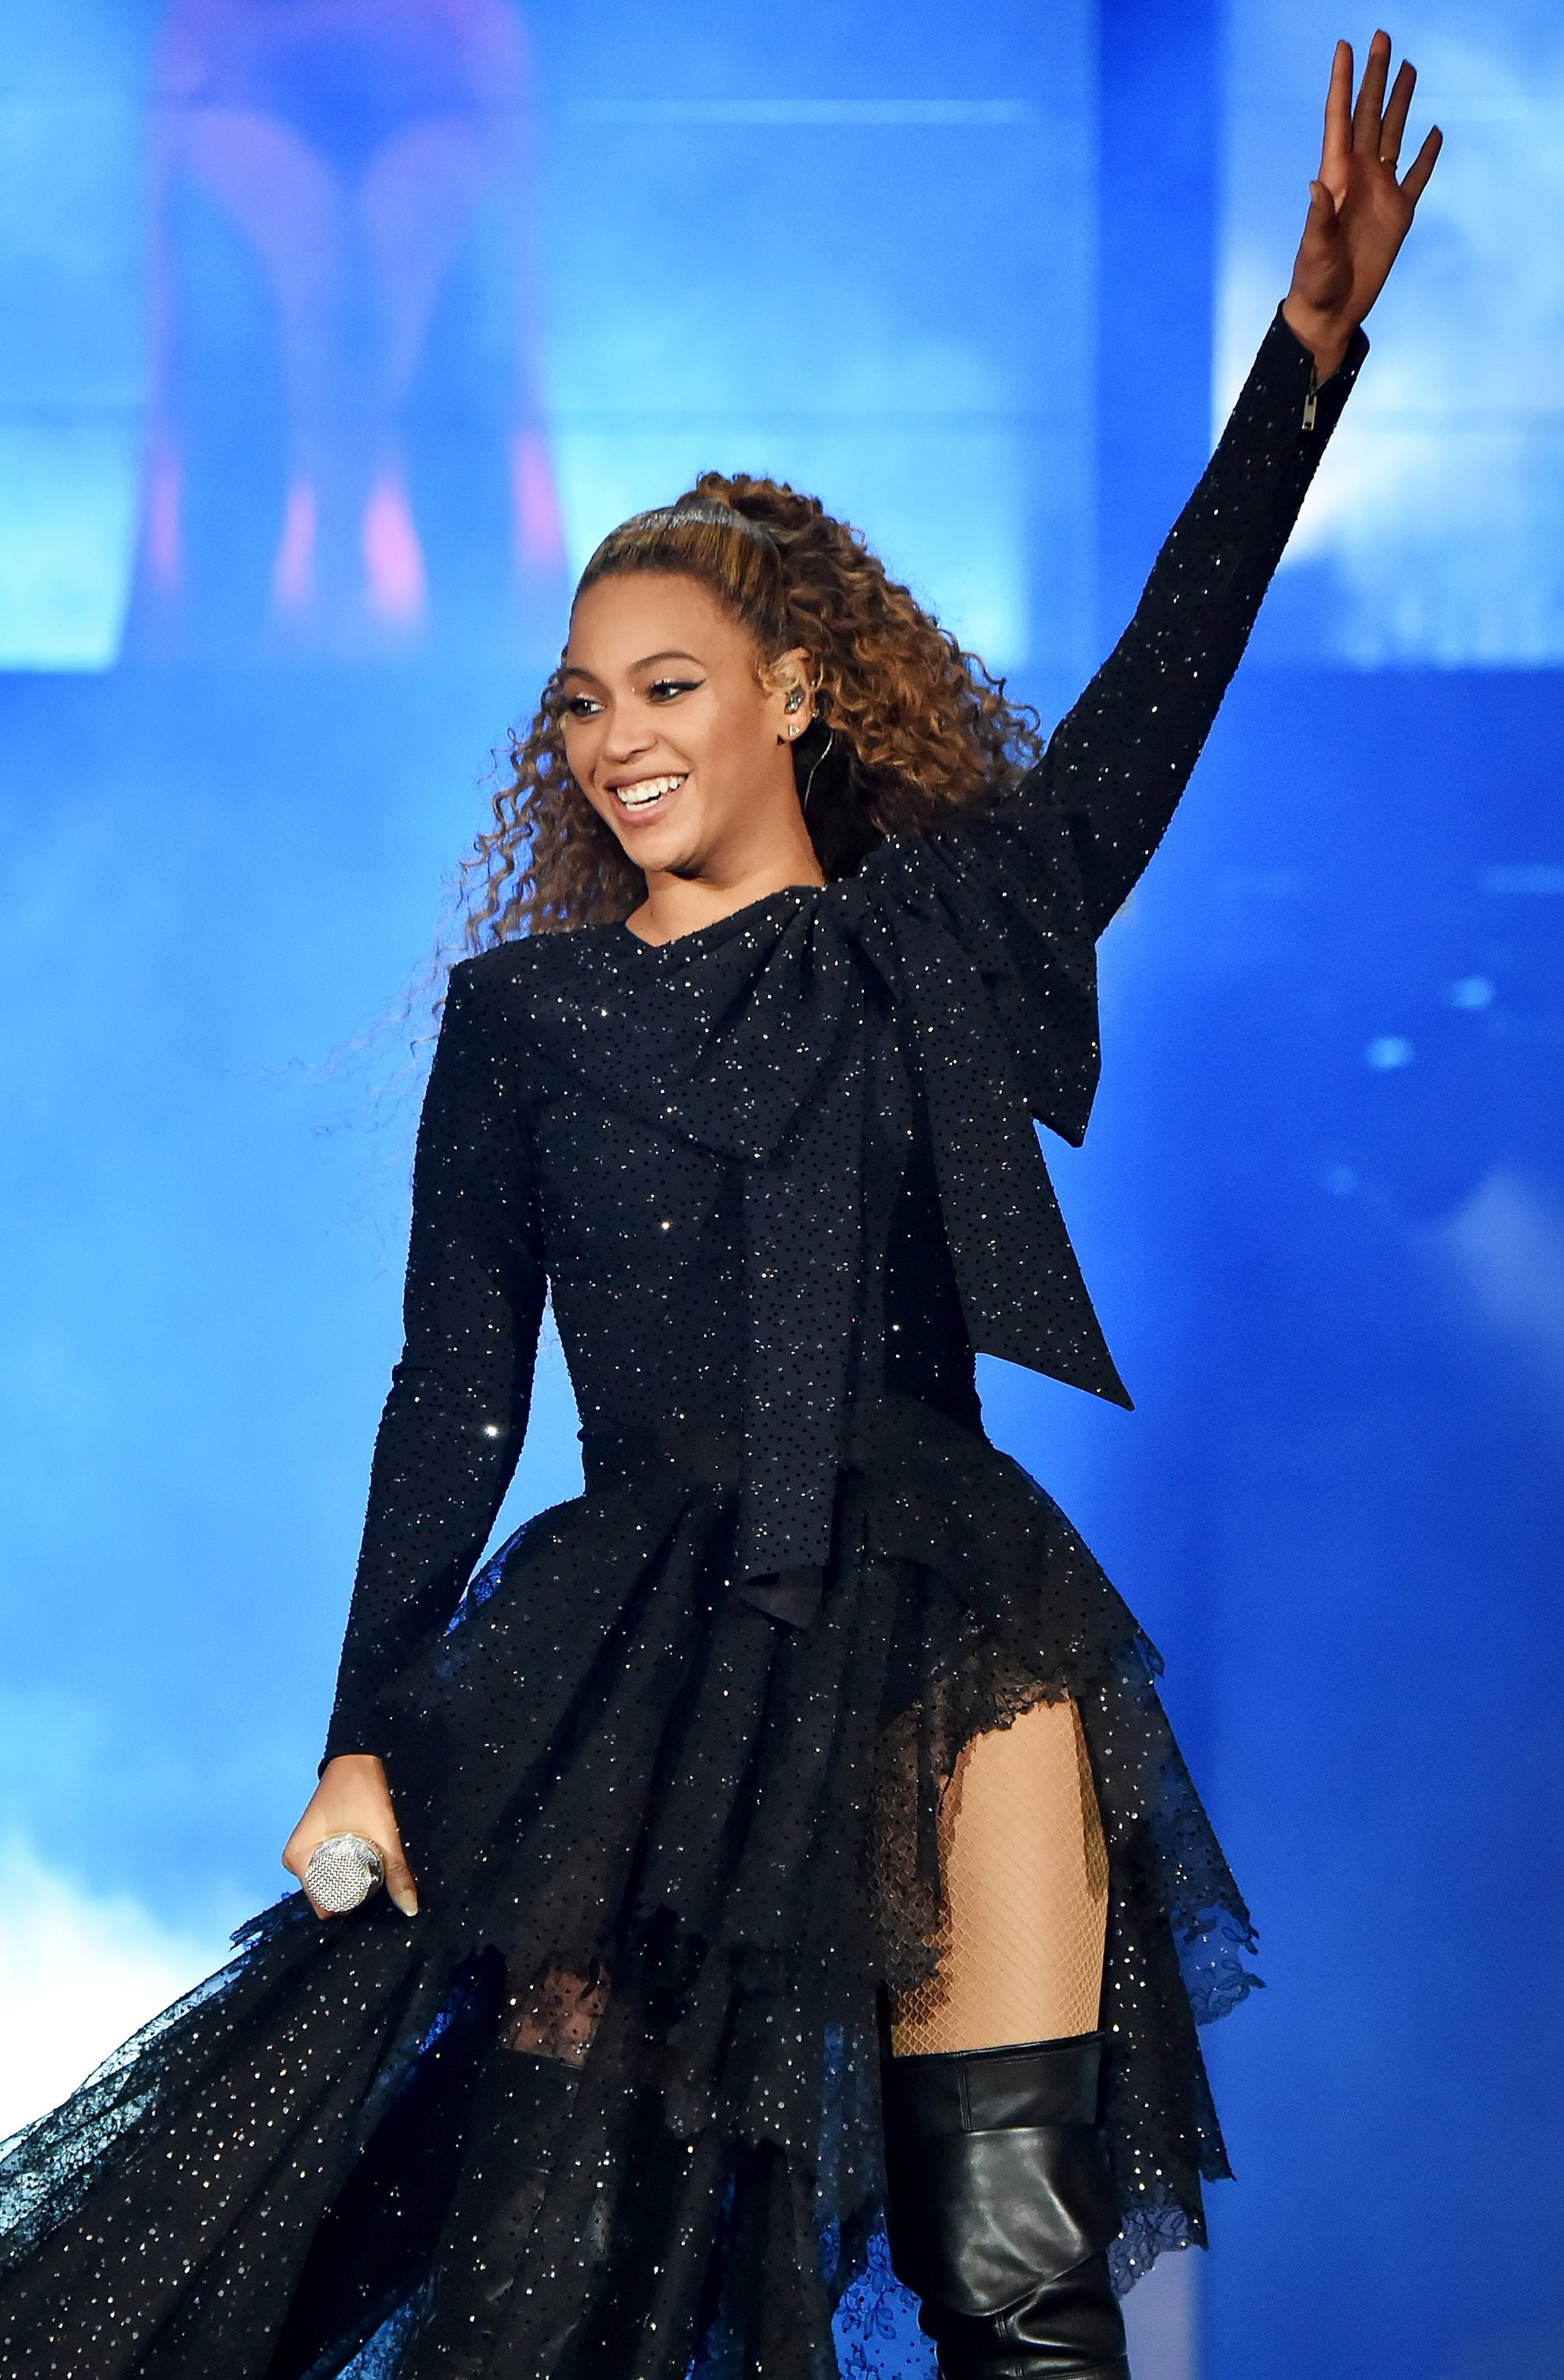 CARDIFF, WALES - JUNE 06:  Beyonce Knowles performs on stage during the